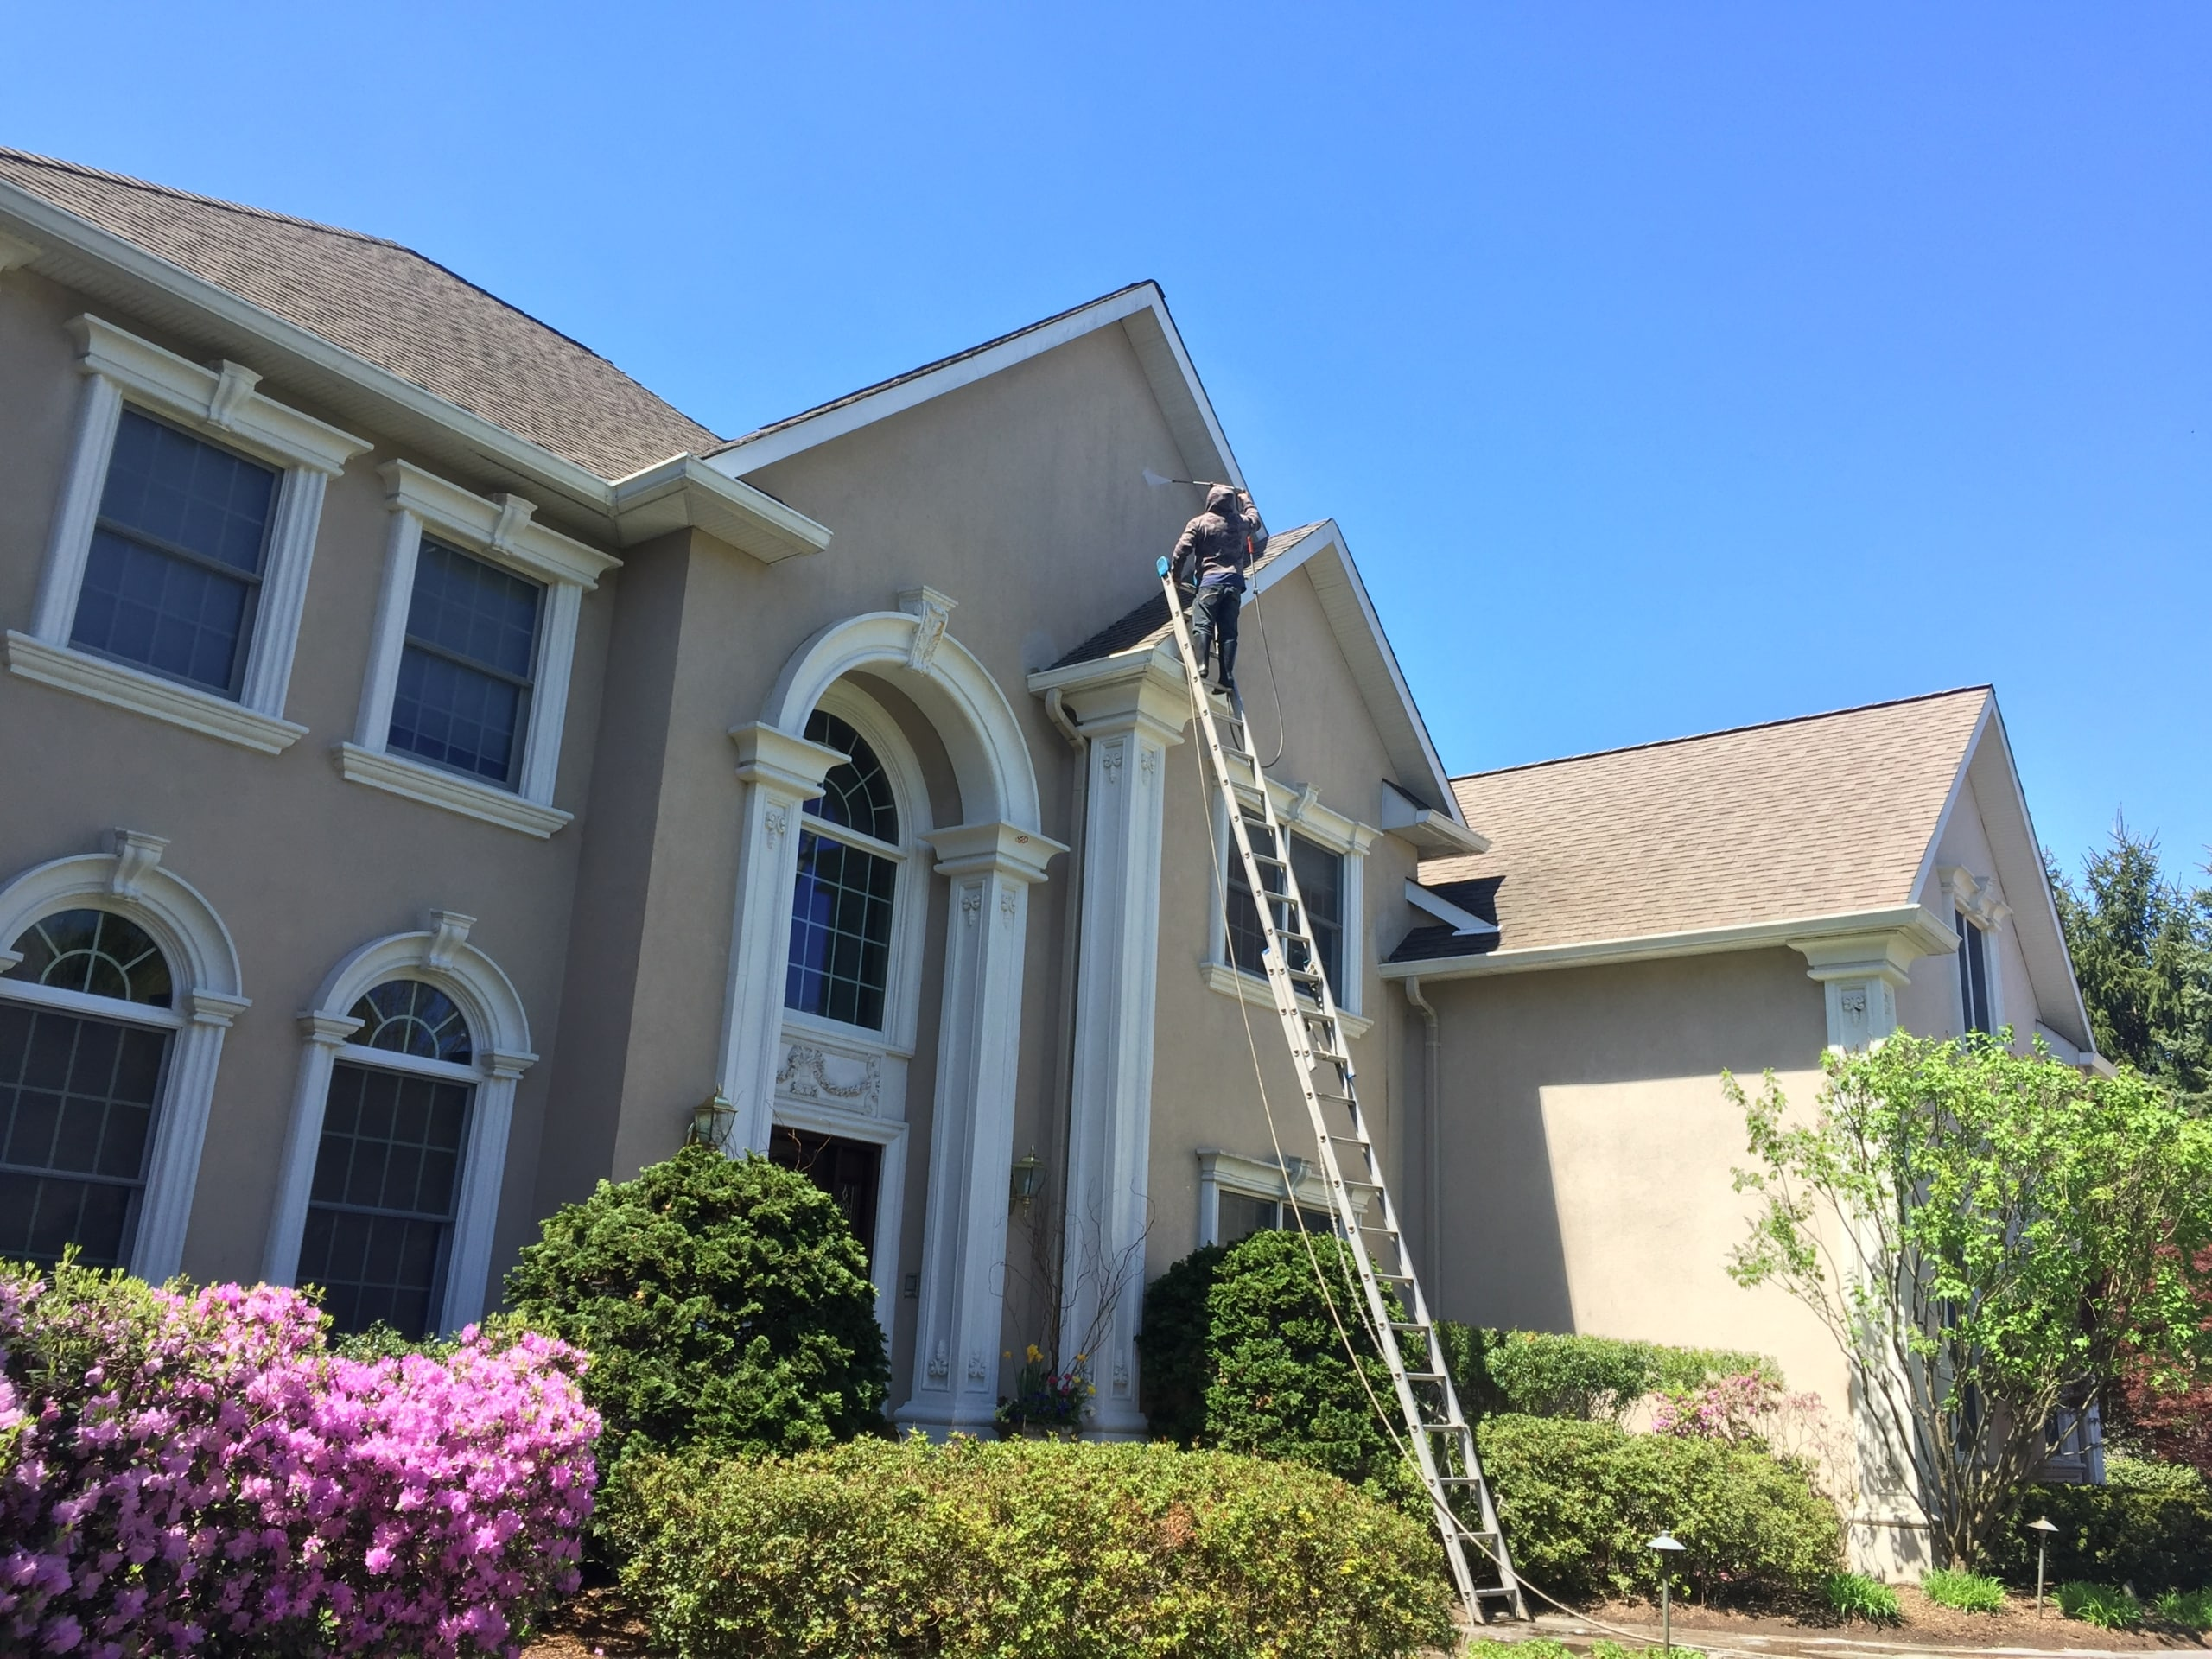 Roof Cleaning And Power Washing In Mahwah Nj Area Bergen